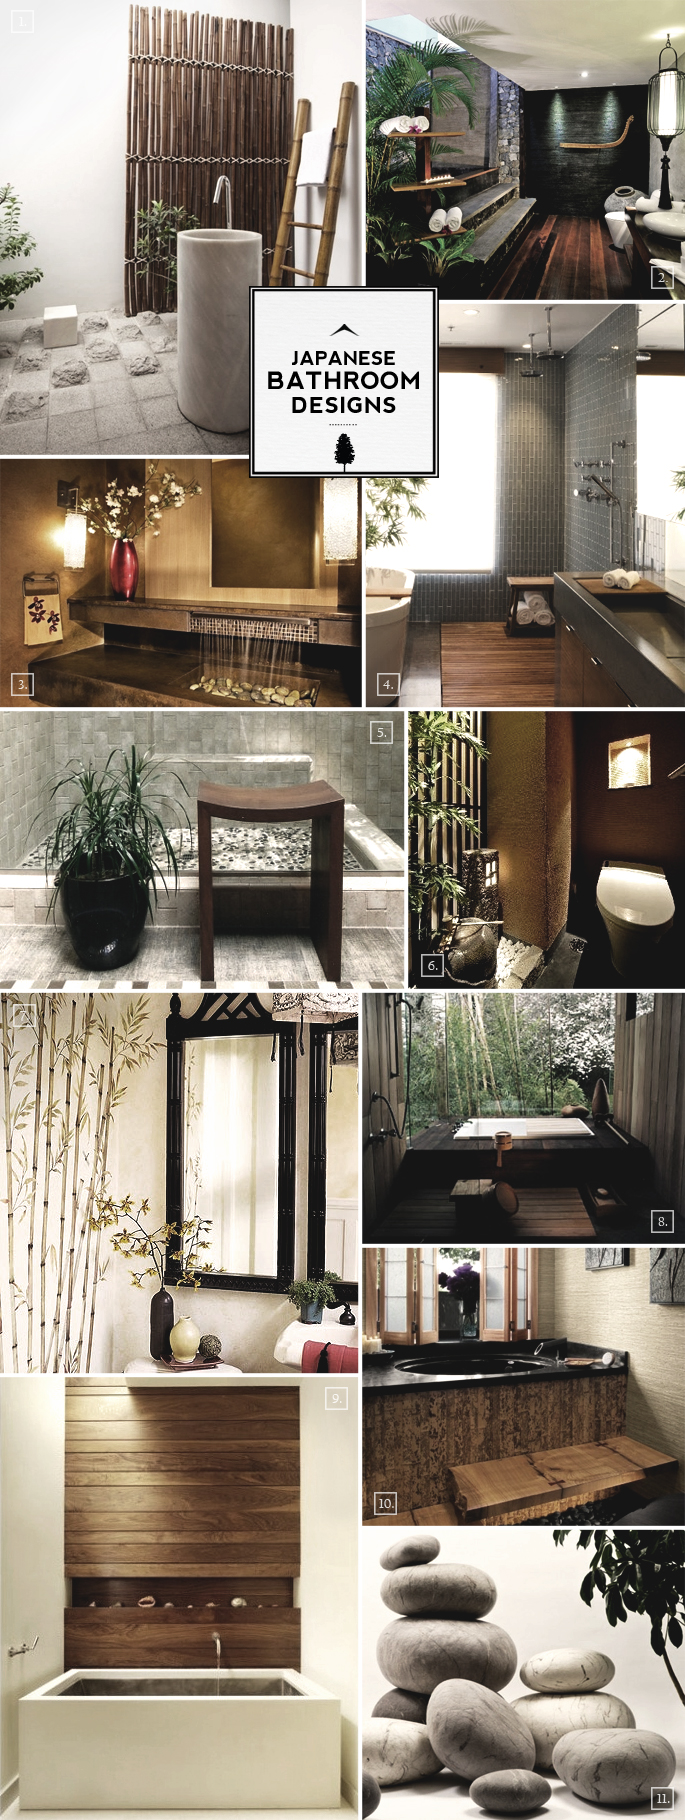 Zen style japanese bathroom design ideas home tree atlas for Zen style kitchen designs